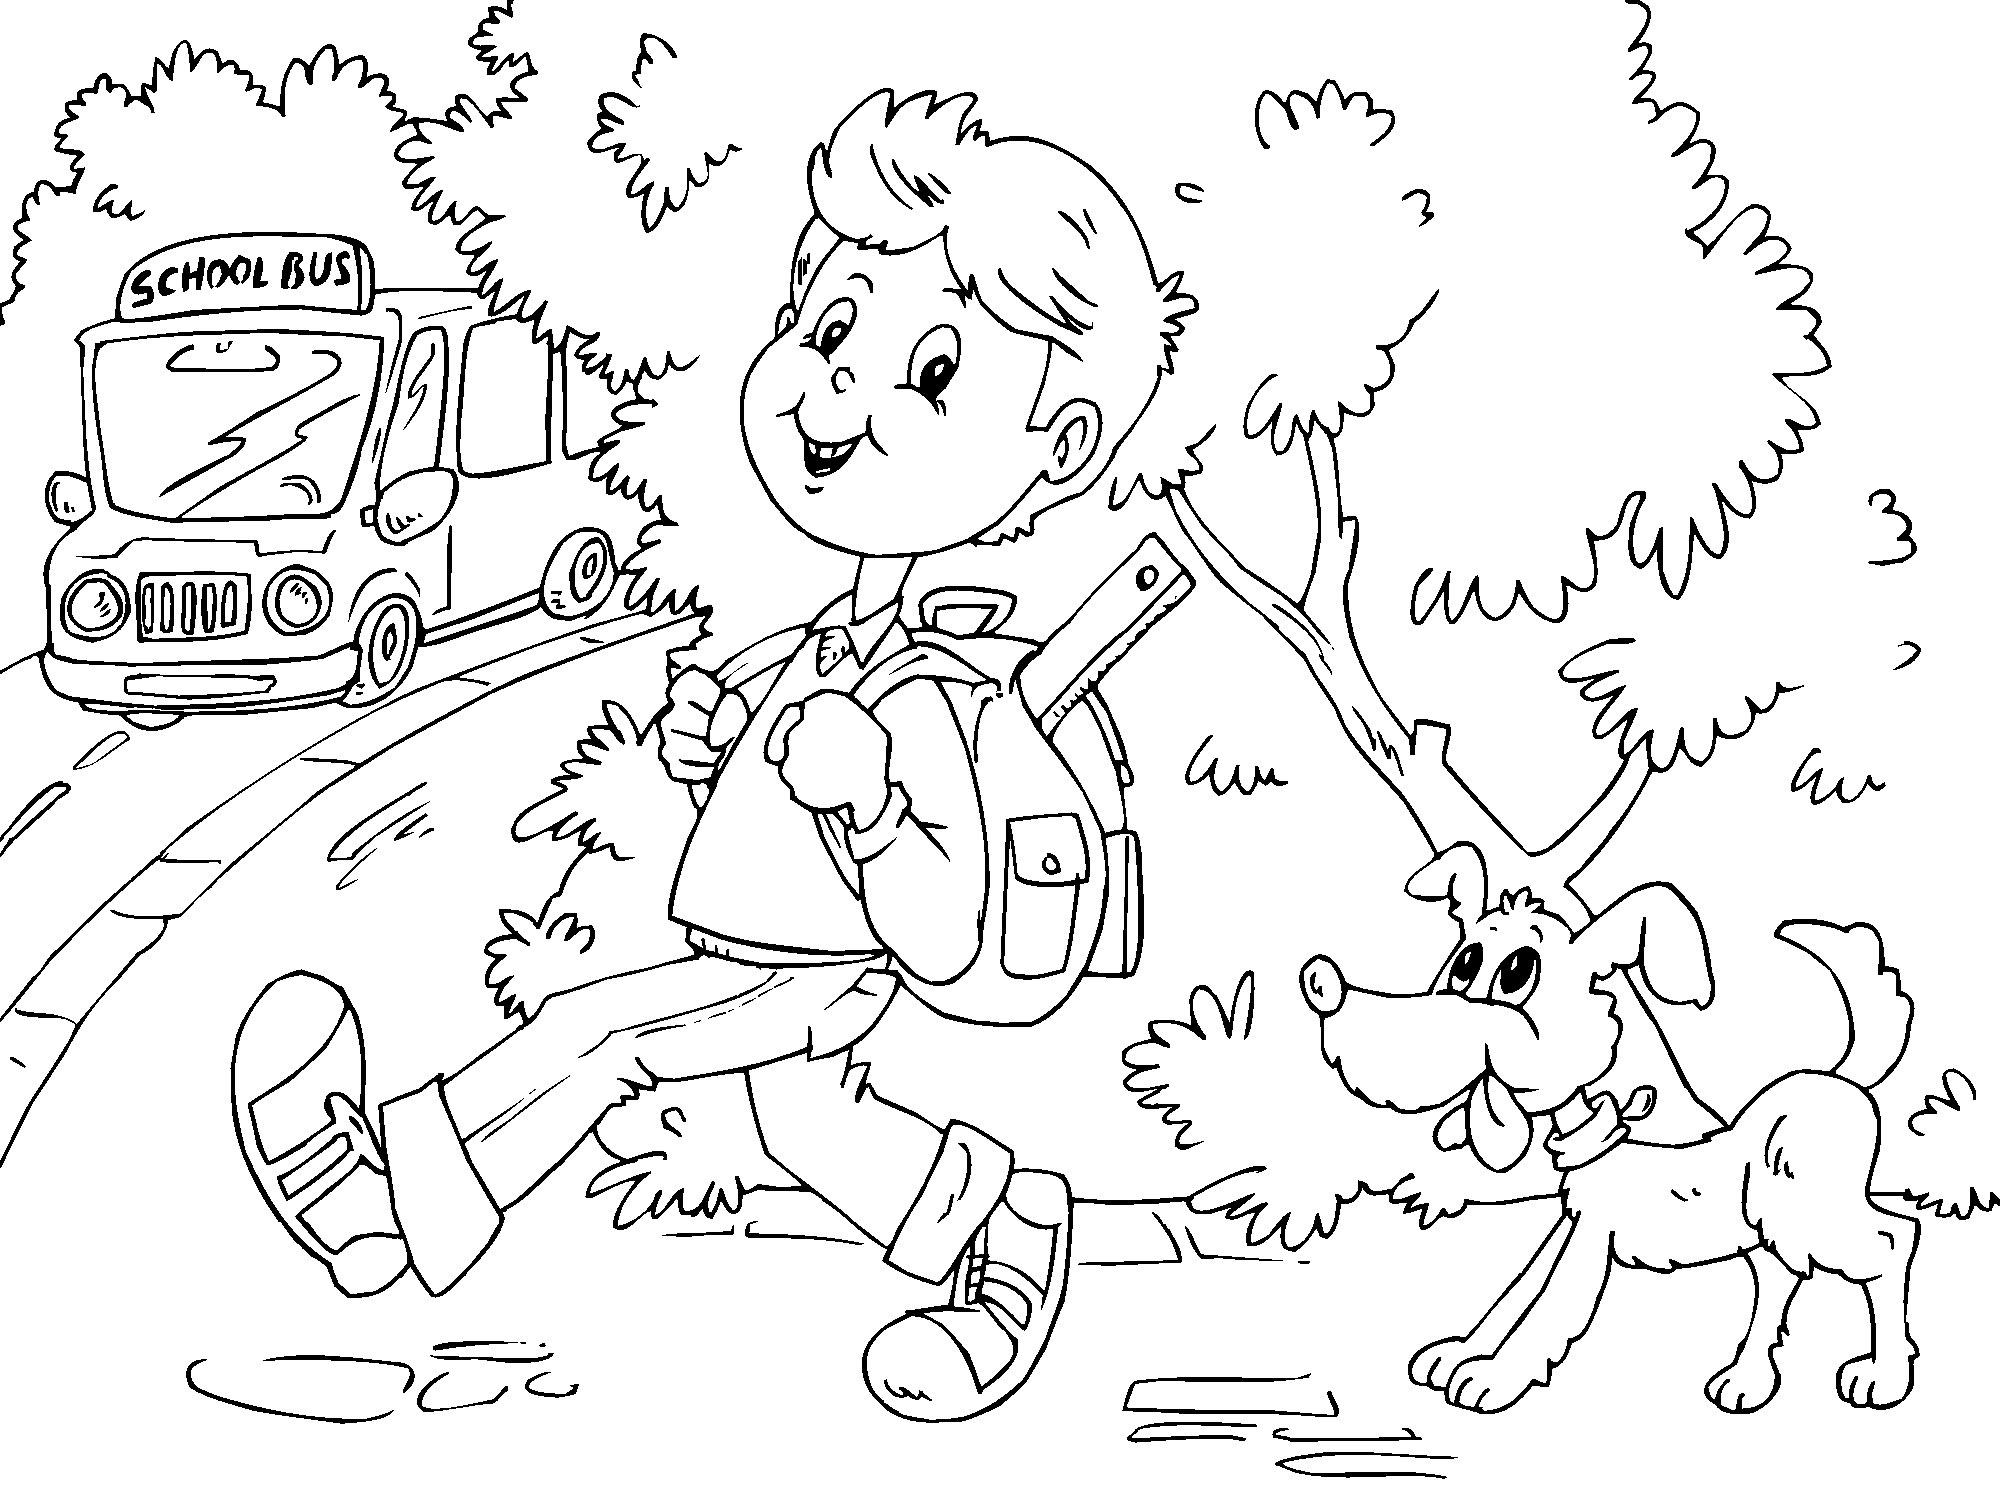 Coloring Page Going To School By Bus Img 22691